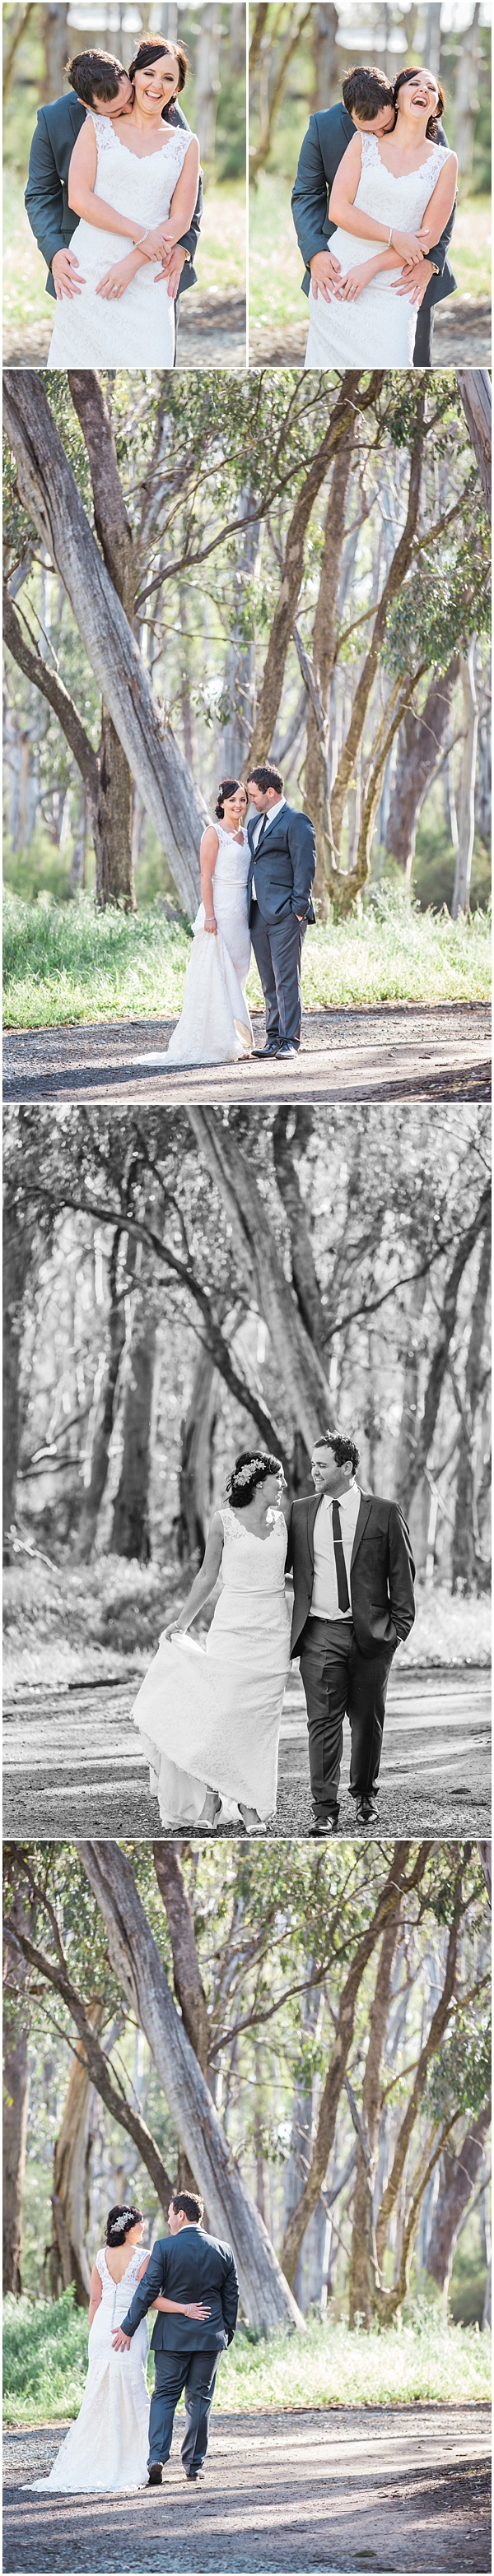 Echuca Moama Wedding Photography_0018